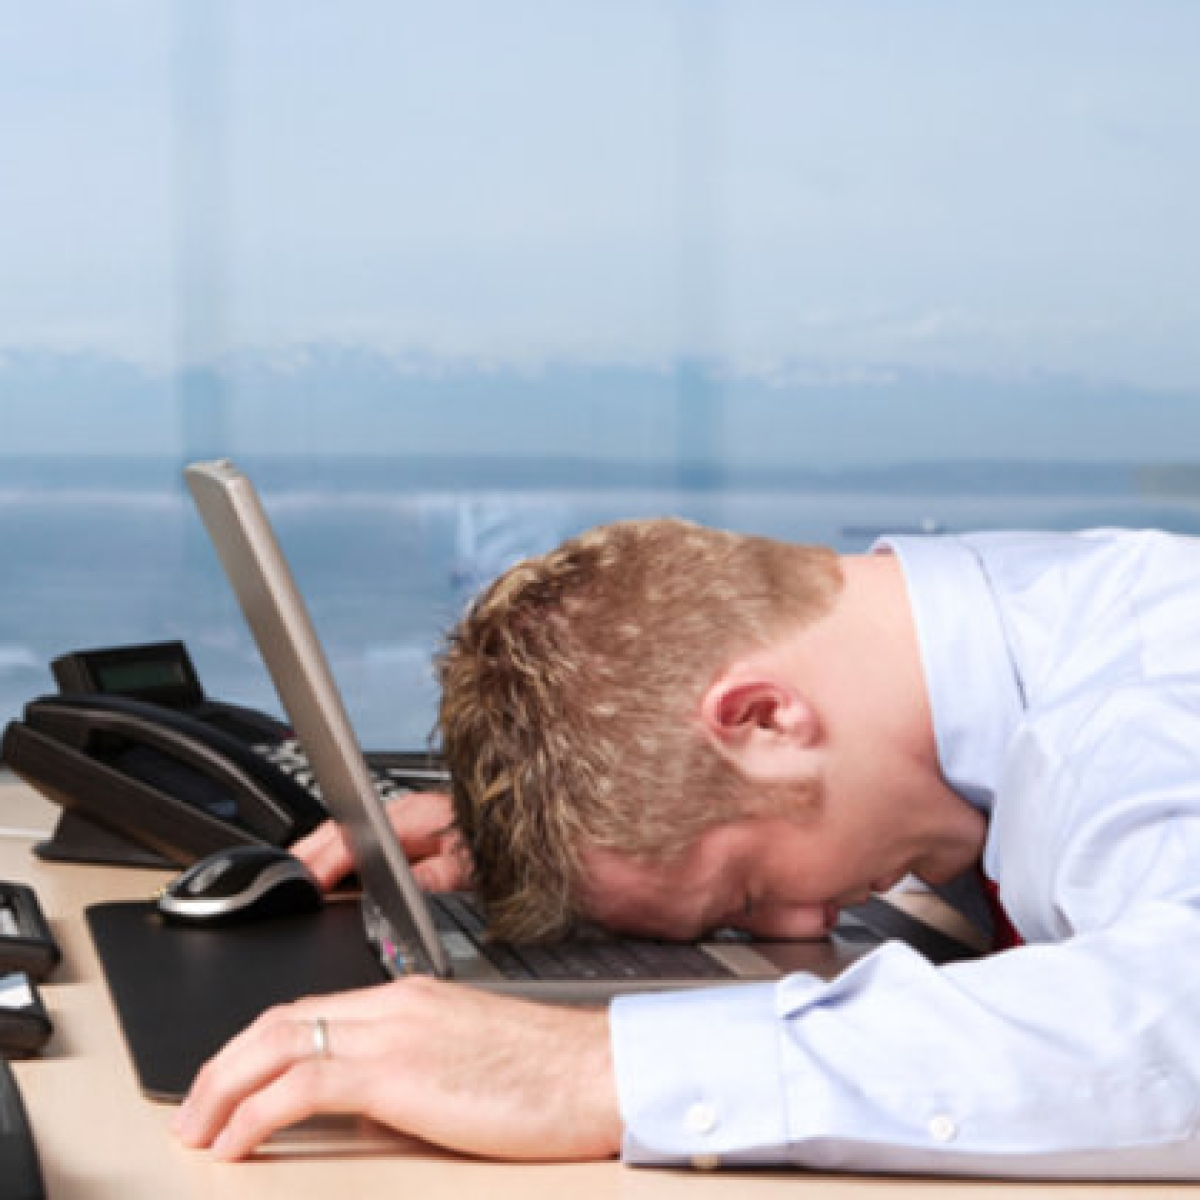 Diabetes-related stress can be worse